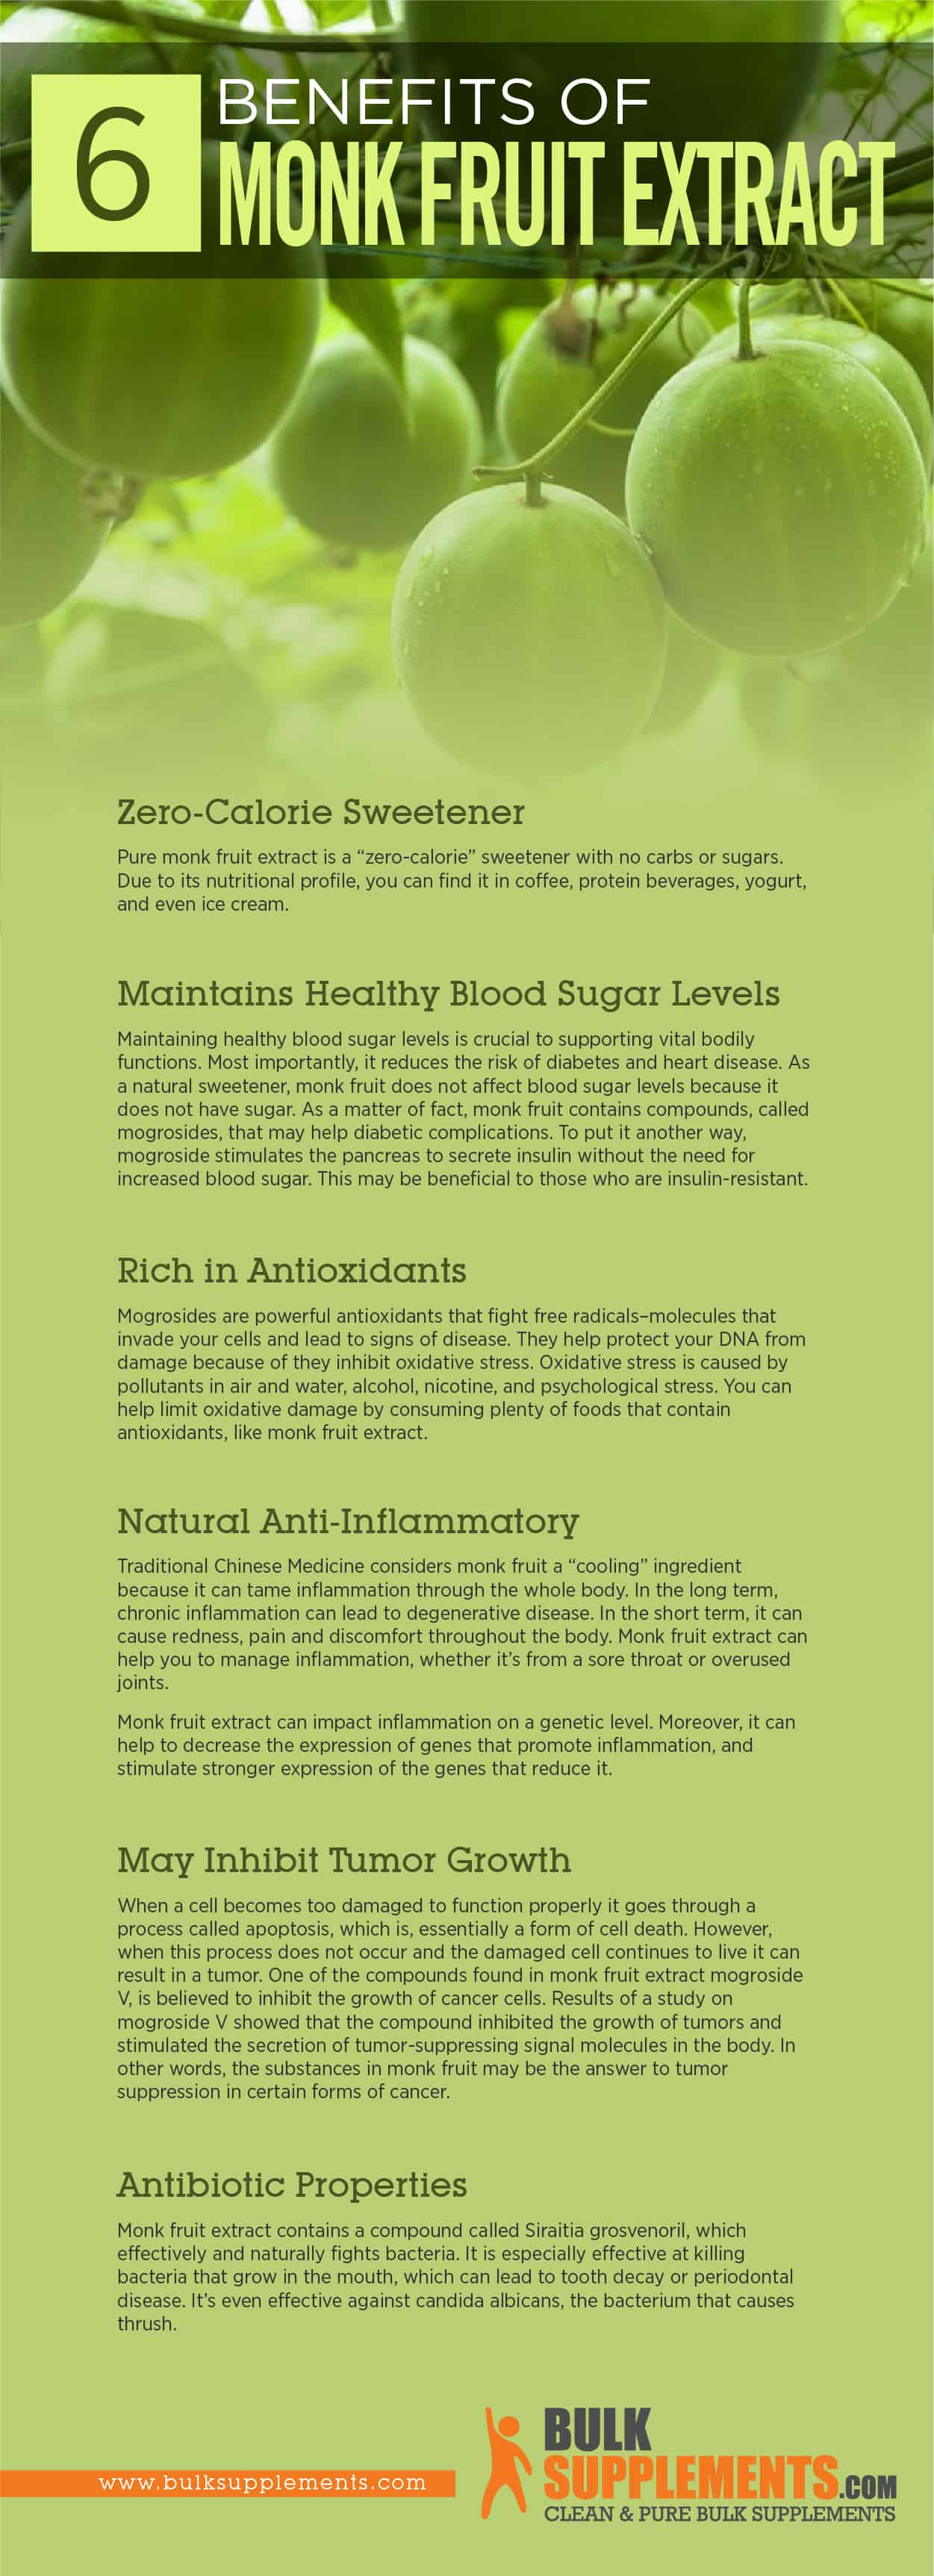 Monk Fruit Extract Benefits